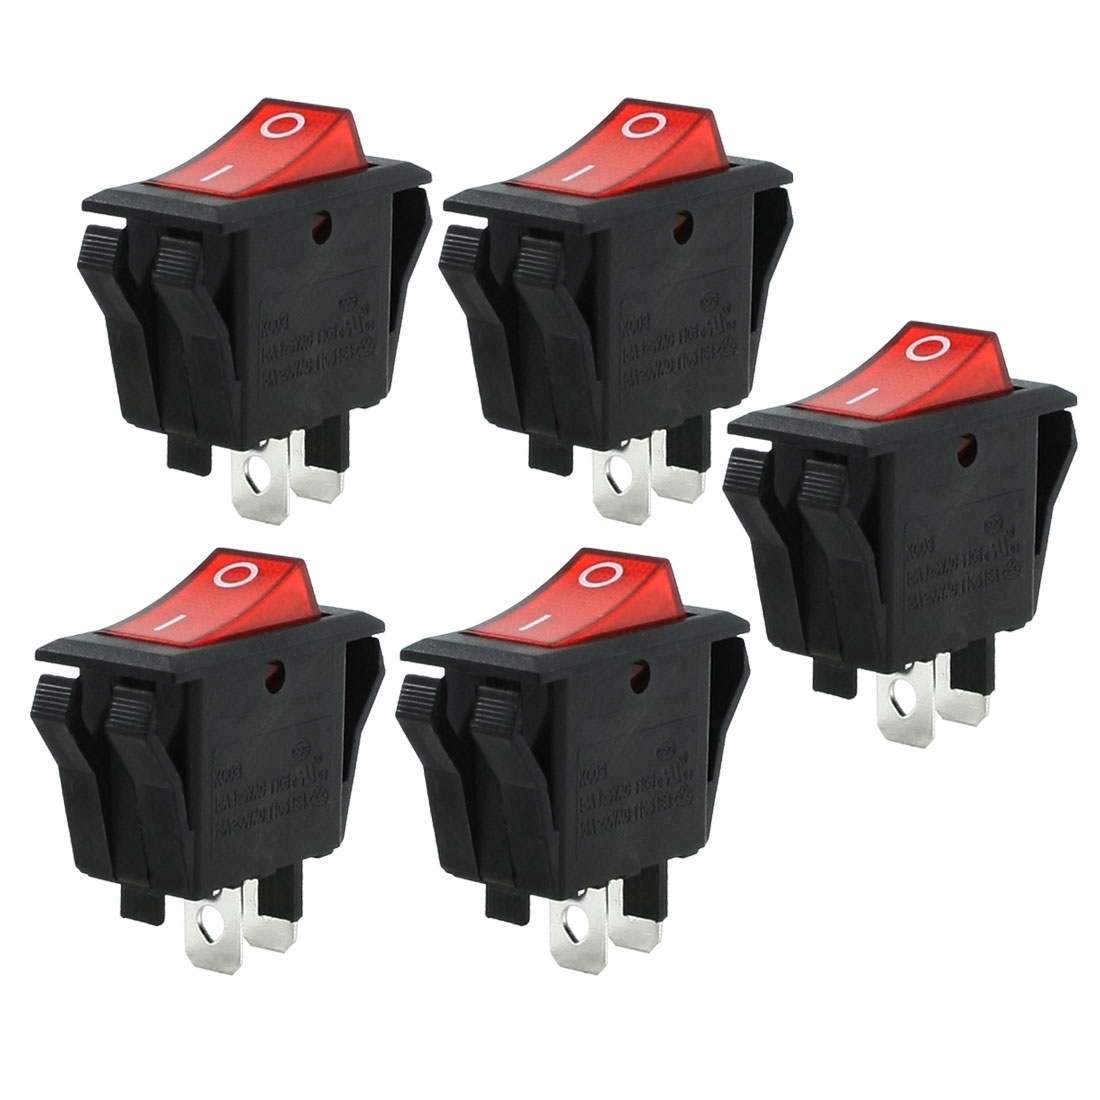 5 Pcs 2P Red Indicator Light SPST 2 Position I/O Rocker Switch 16A 250V/125VAC